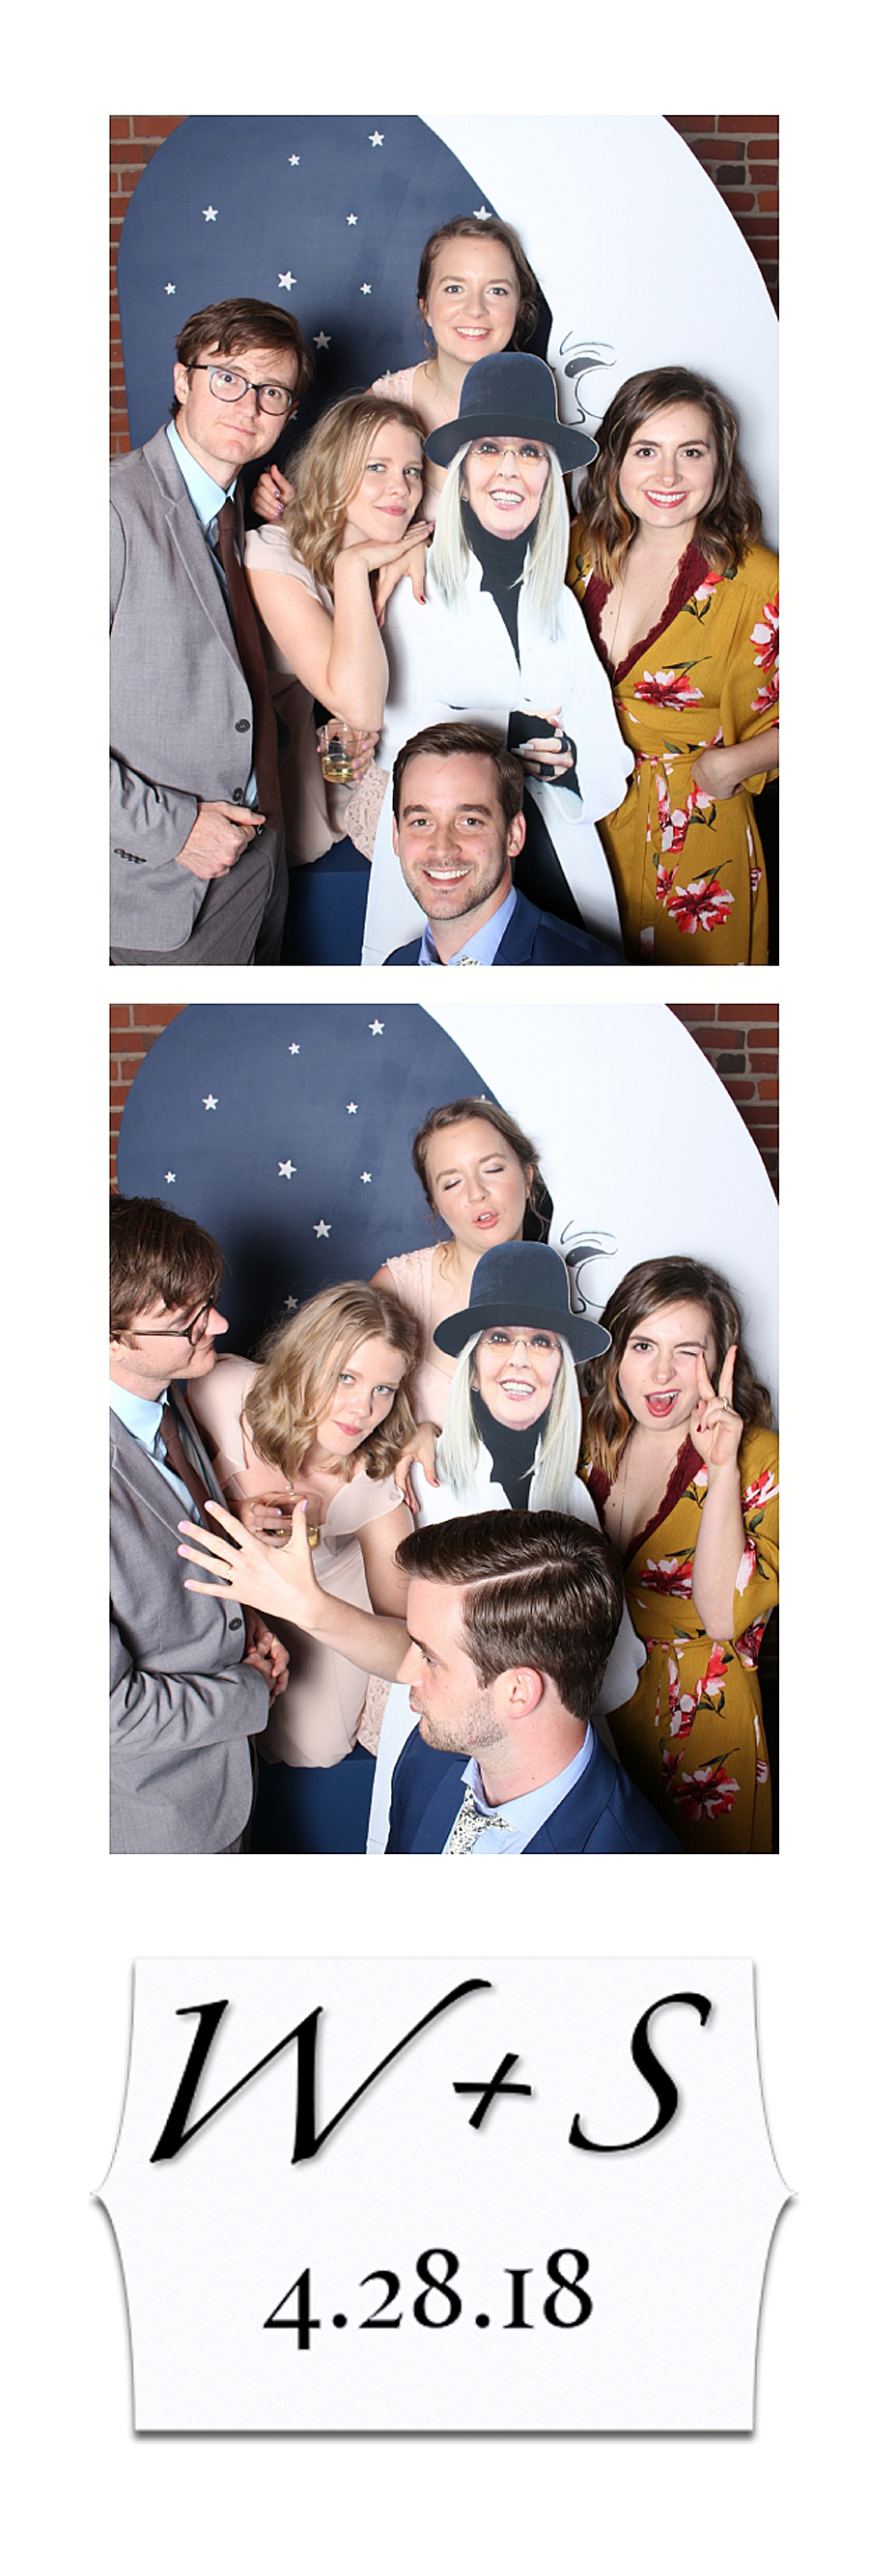 Knoxville Photo Booth_1714.jpg